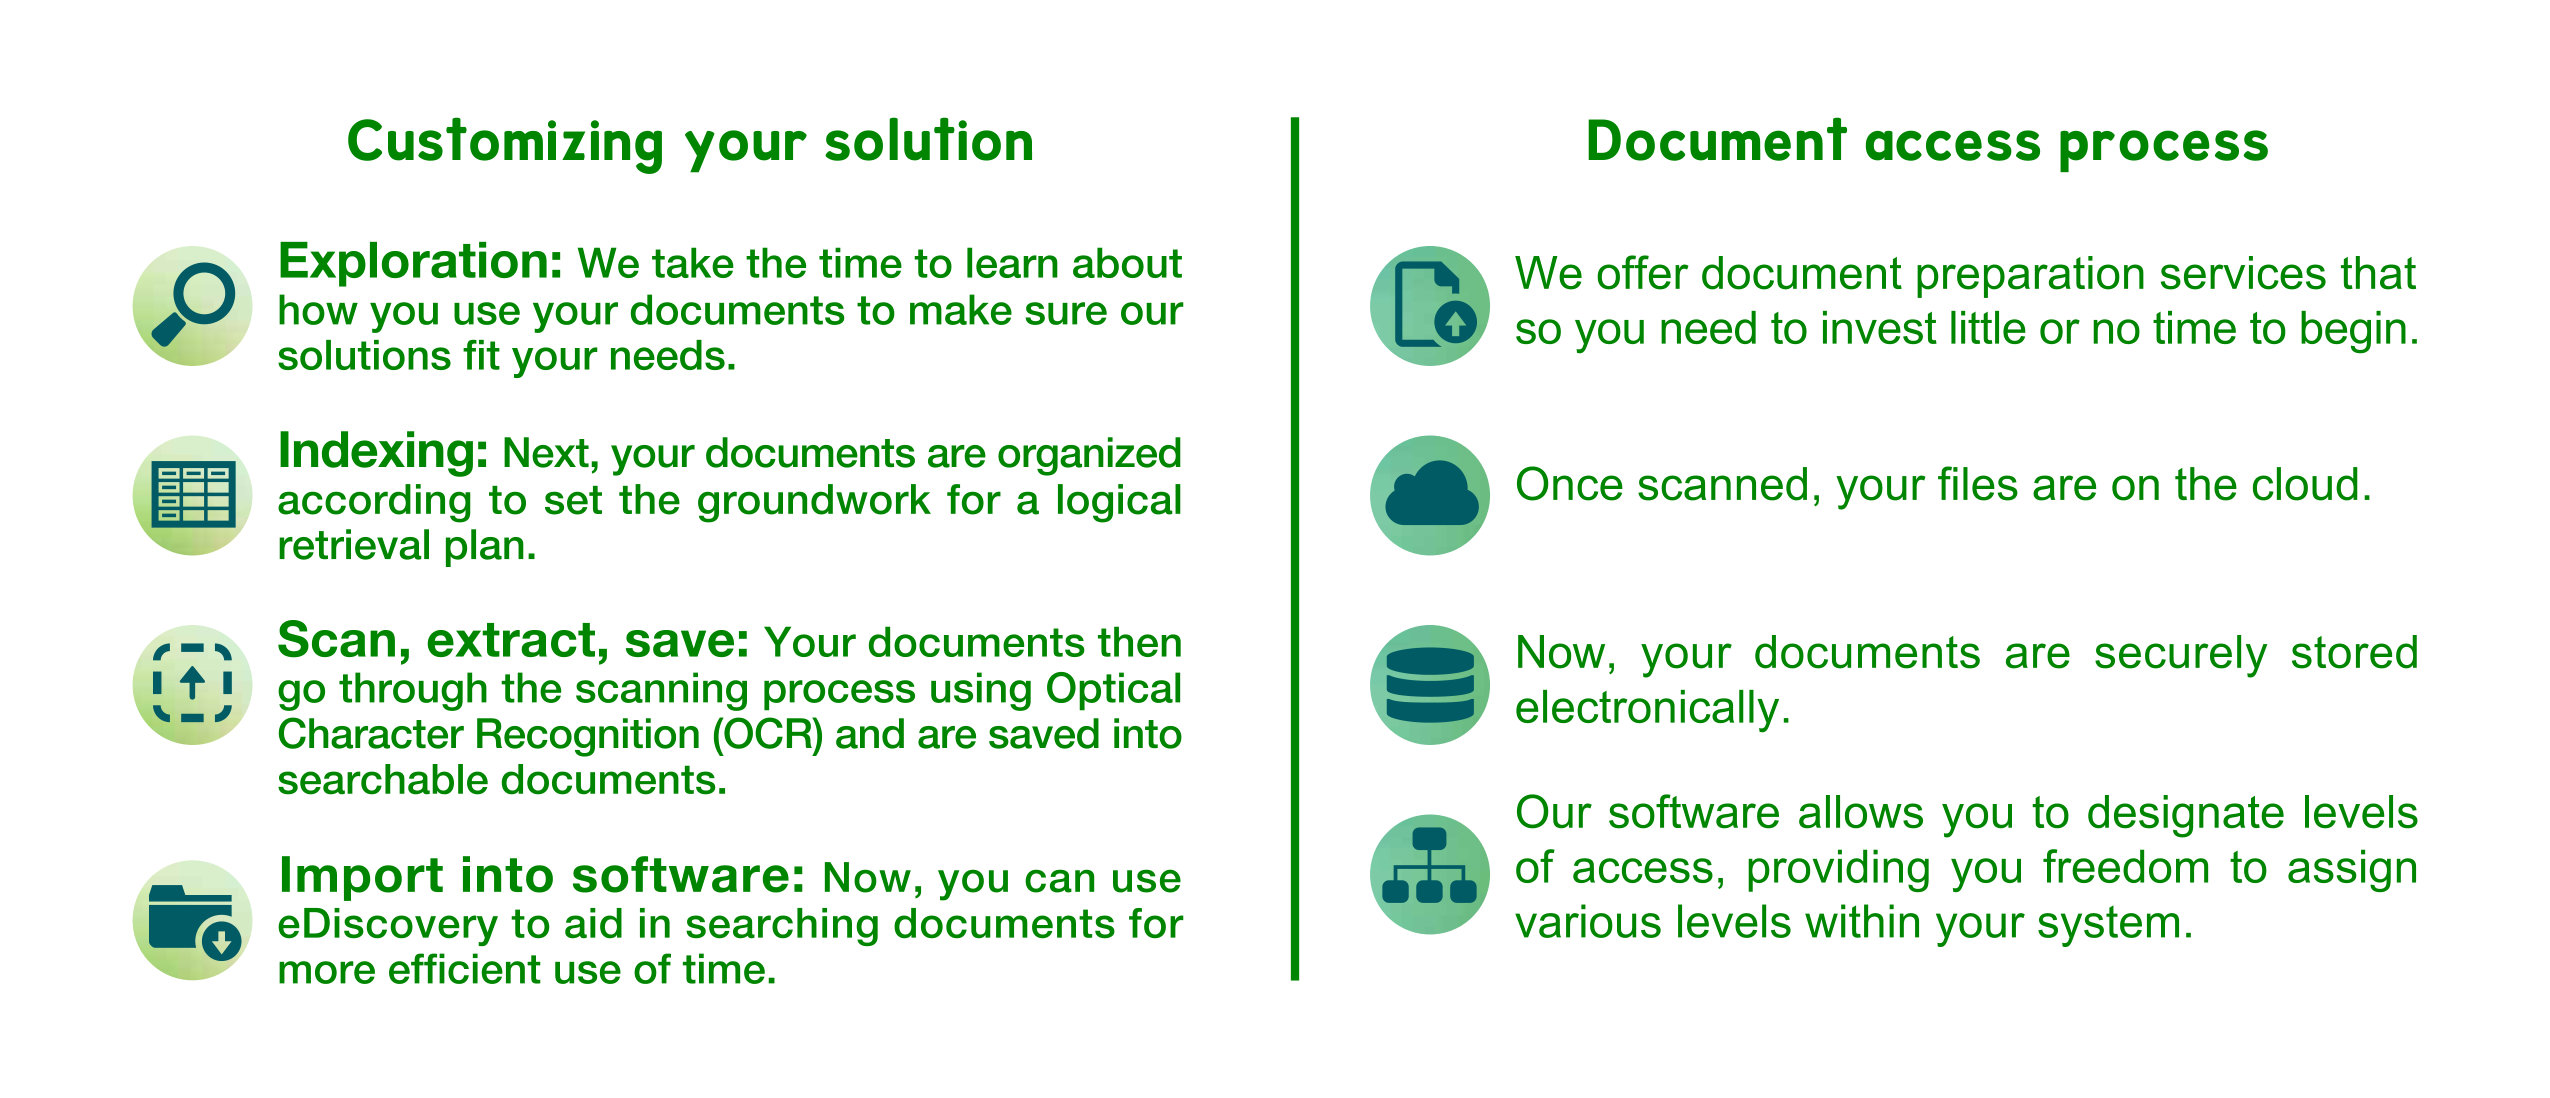 Customized document imaging solution chart and document access process